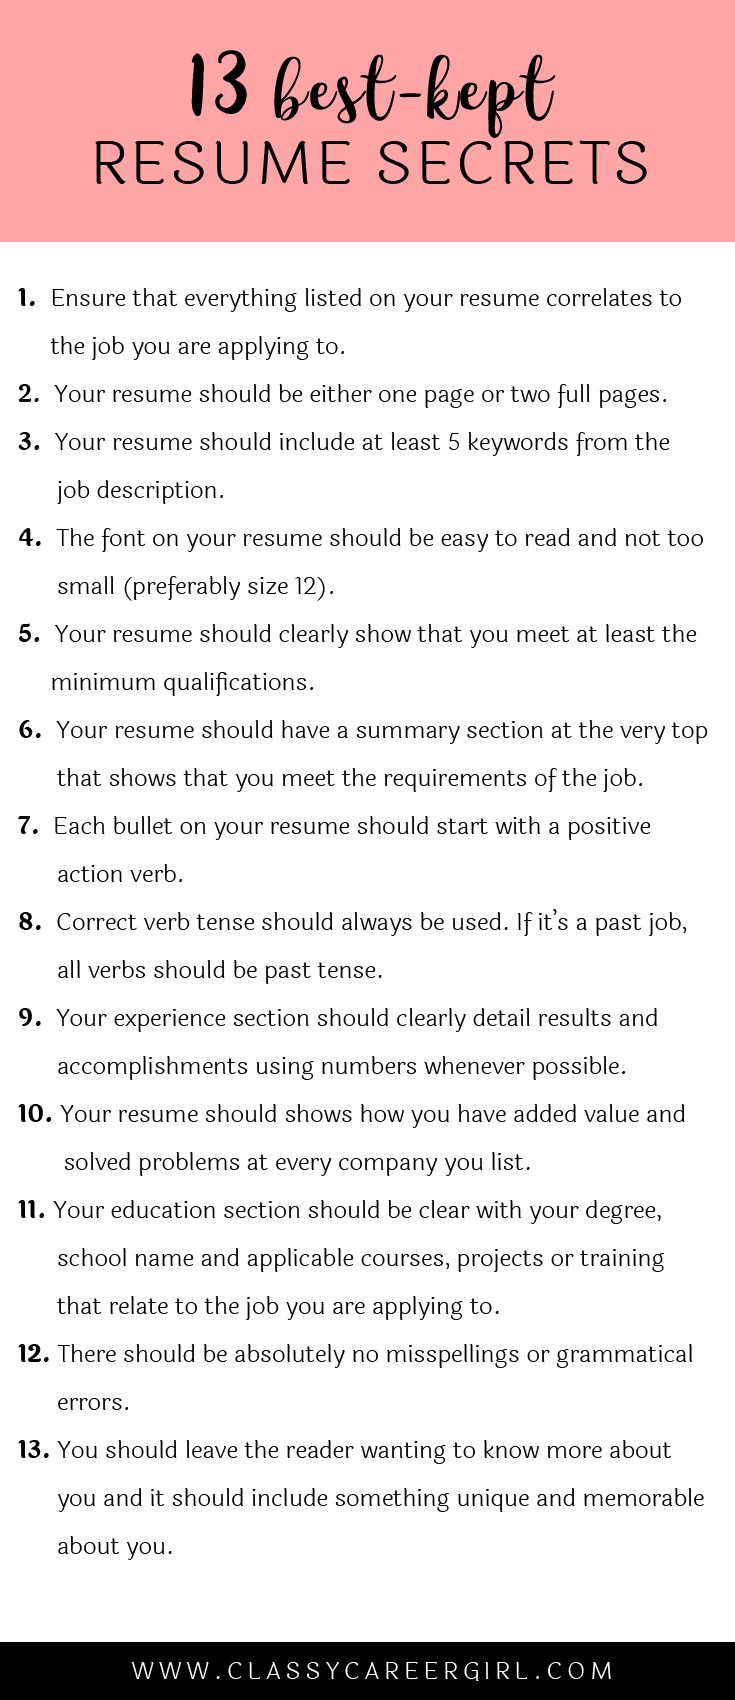 Opposenewapstandardsus  Gorgeous  Ideas About Resume On Pinterest  Cv Format Resume Cv And  With Handsome Some Hiring Managers Will Toss Your Resume Out If You Dont Know These  With Awesome Blank Resume Format Also Popular Resume Formats In Addition How Should My Resume Look And Account Manager Resume Sample As Well As Best Resume Writer Additionally Free Printable Resumes Templates From Pinterestcom With Opposenewapstandardsus  Handsome  Ideas About Resume On Pinterest  Cv Format Resume Cv And  With Awesome Some Hiring Managers Will Toss Your Resume Out If You Dont Know These  And Gorgeous Blank Resume Format Also Popular Resume Formats In Addition How Should My Resume Look From Pinterestcom